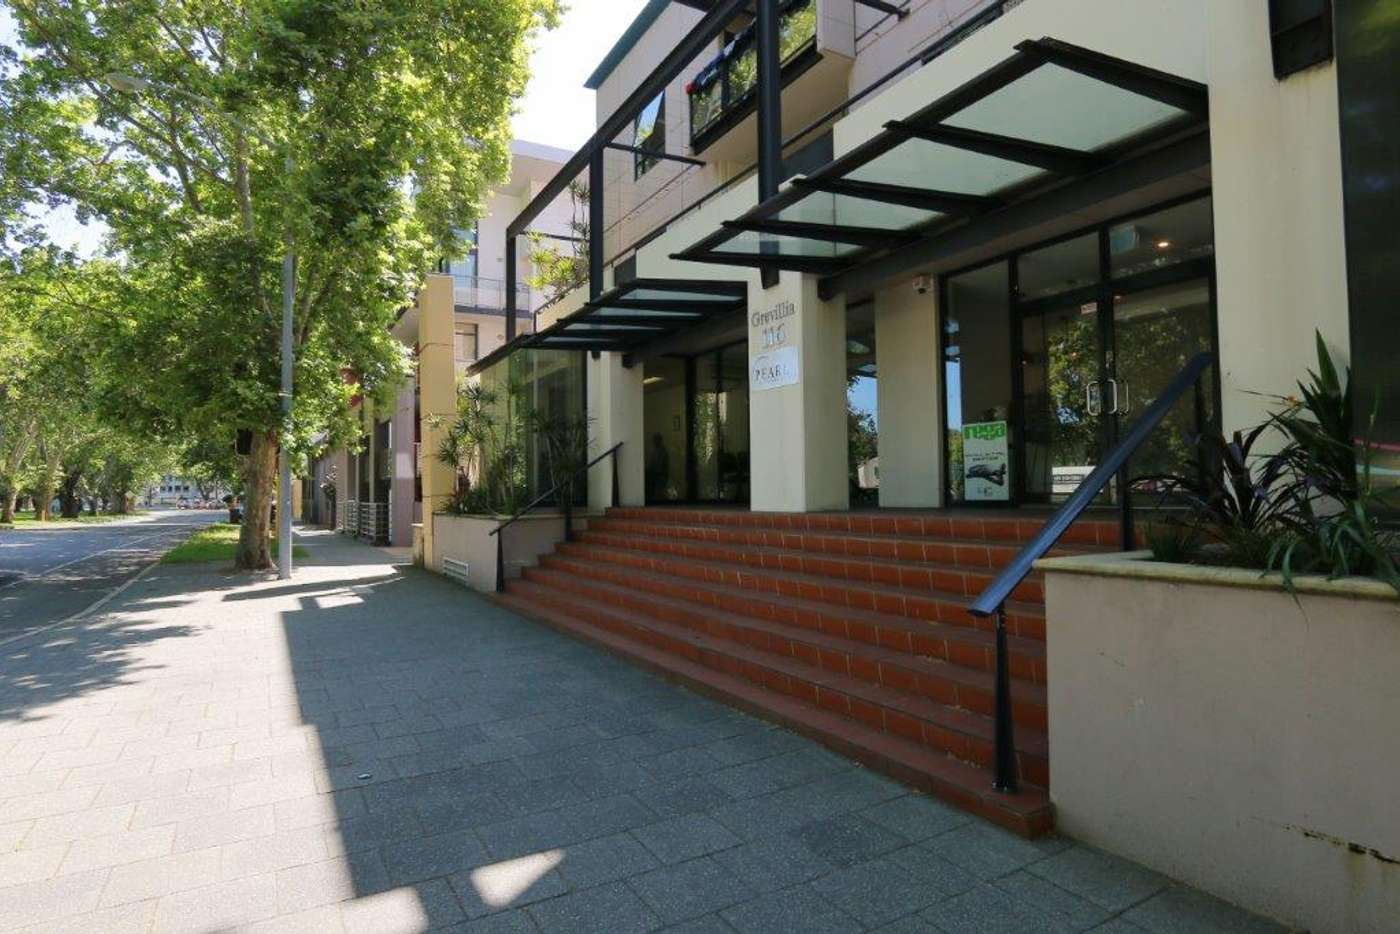 Main view of Homely apartment listing, 7/116 Mounts Bay Road, Perth WA 6000